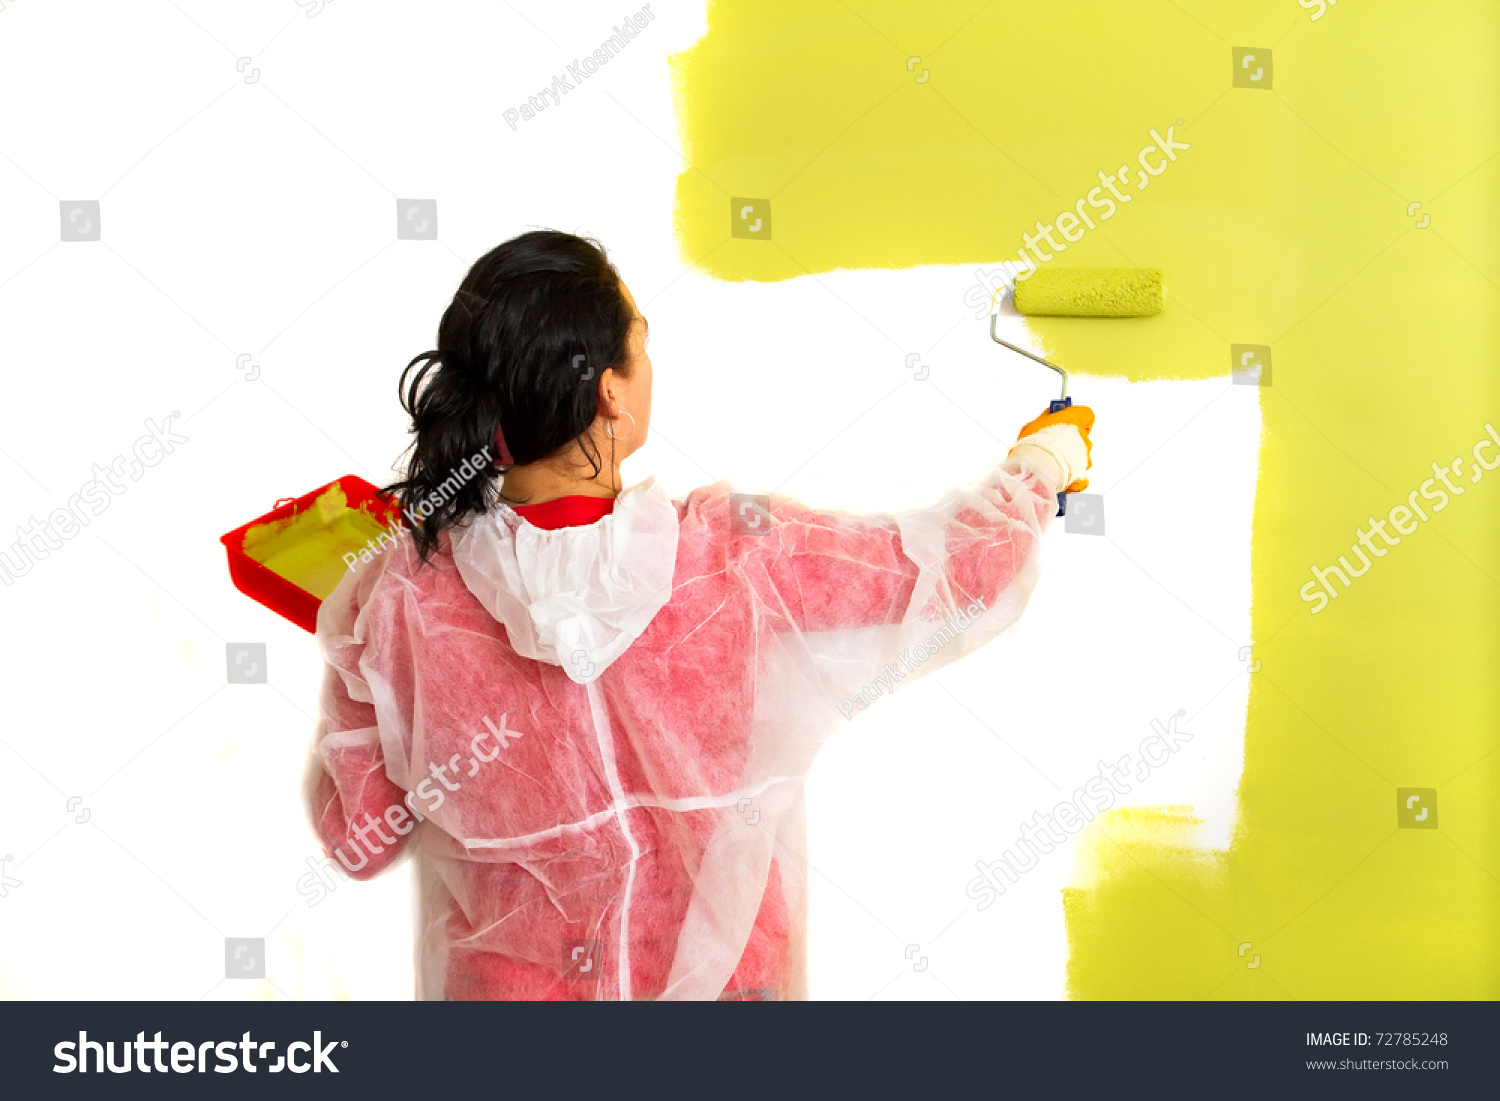 woman paints inside house with breast jpg 1080x810